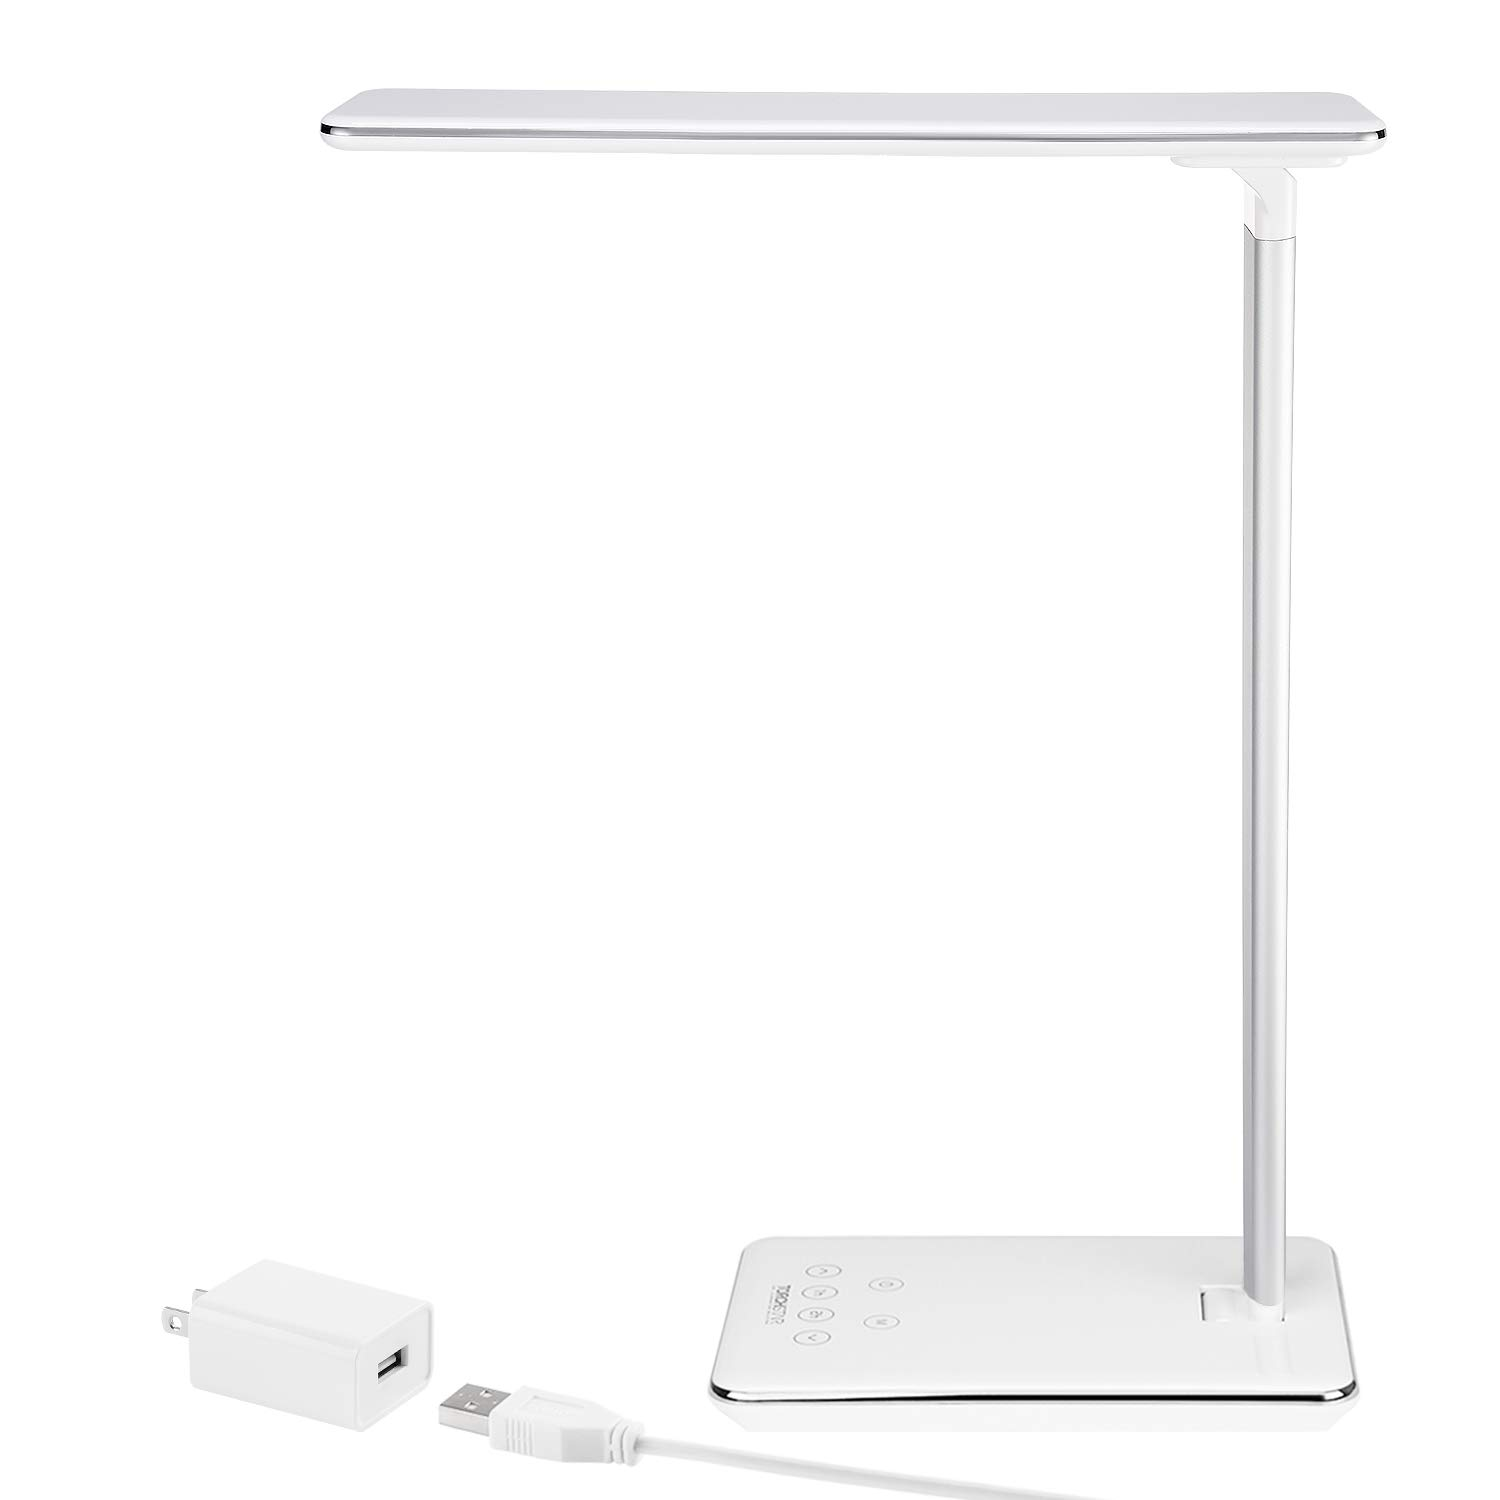 TORCHSTAR Dimmable LED Desk Lamp, Eye-Caring Study Table Lamp with USB Charging Port, Fully Adjustable Brightness, Touch Sensitive Control, 4 Lighting Modes, 1 & 2 Hour Auto Timer, Piano White Finish